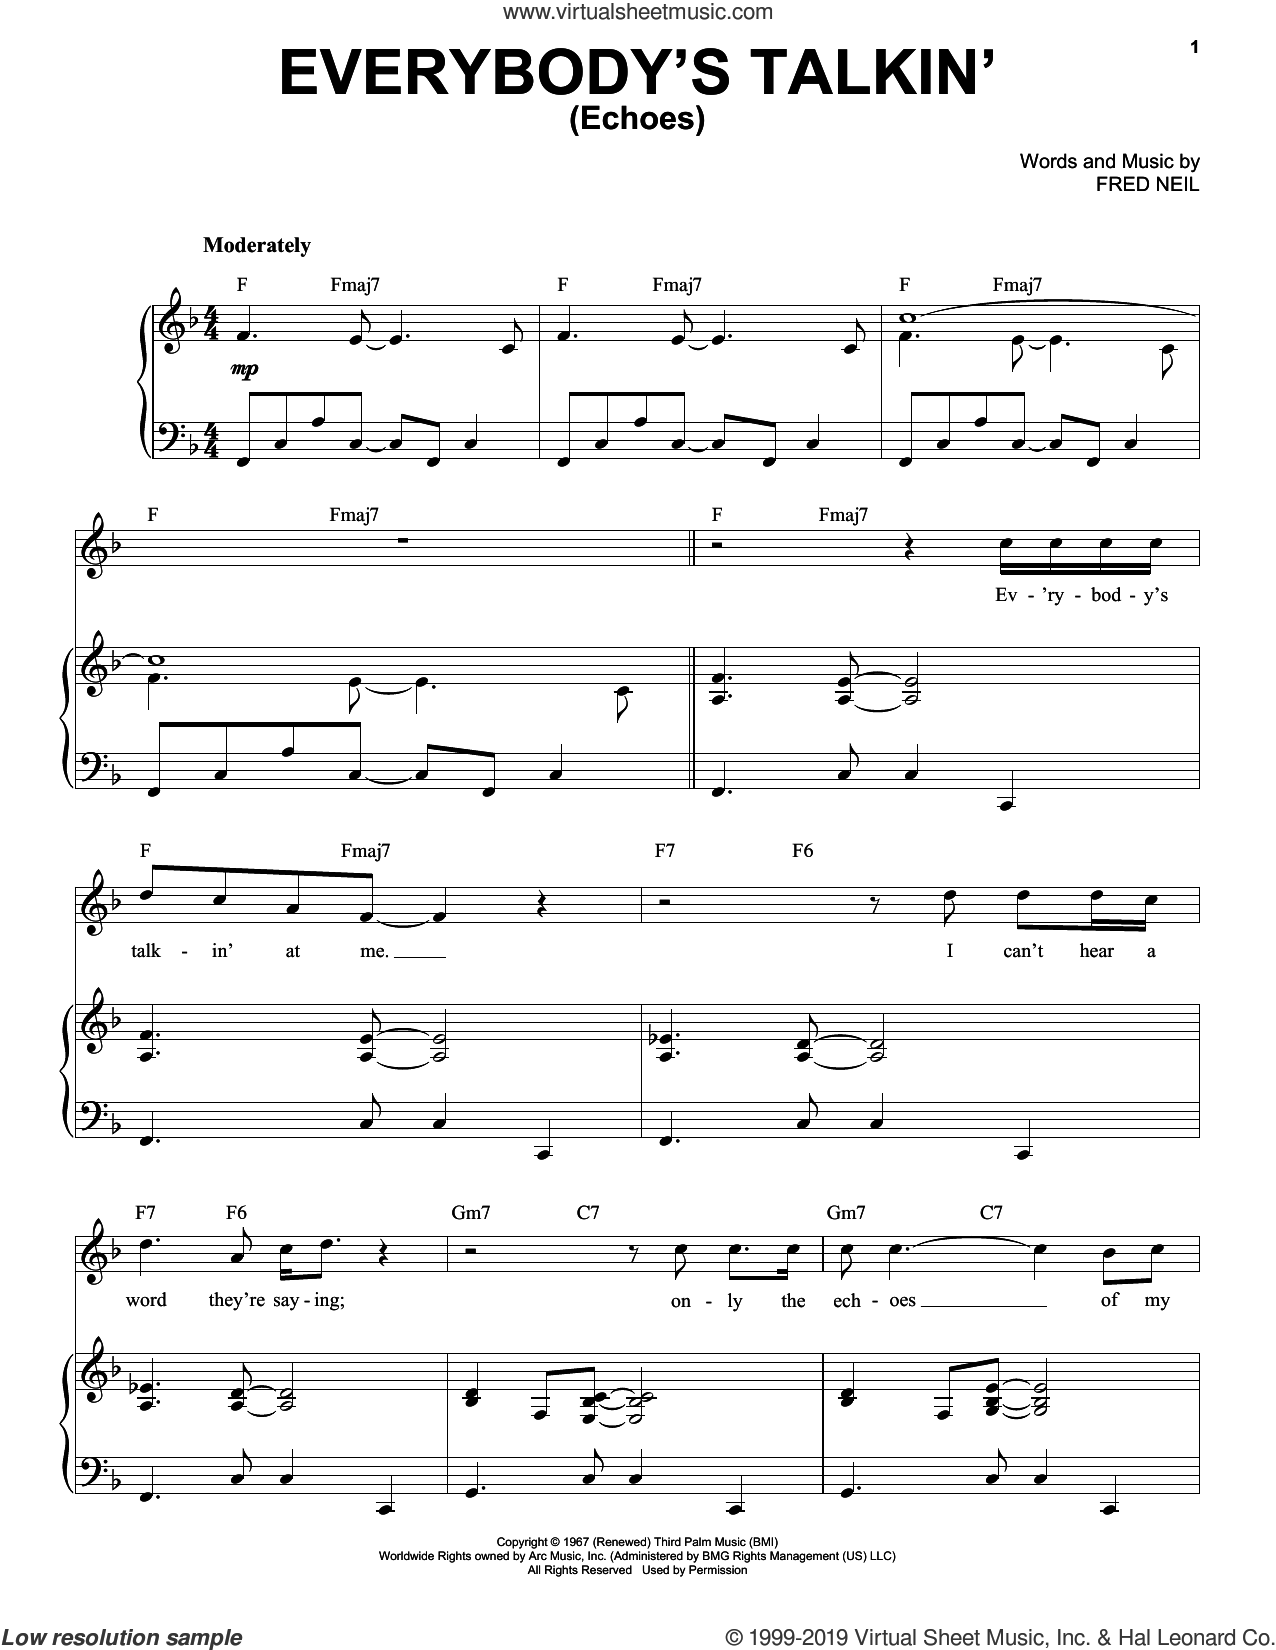 Everybody's Talkin' (Echoes) sheet music for voice and piano by Tony Bennett and Fred Neil, intermediate skill level